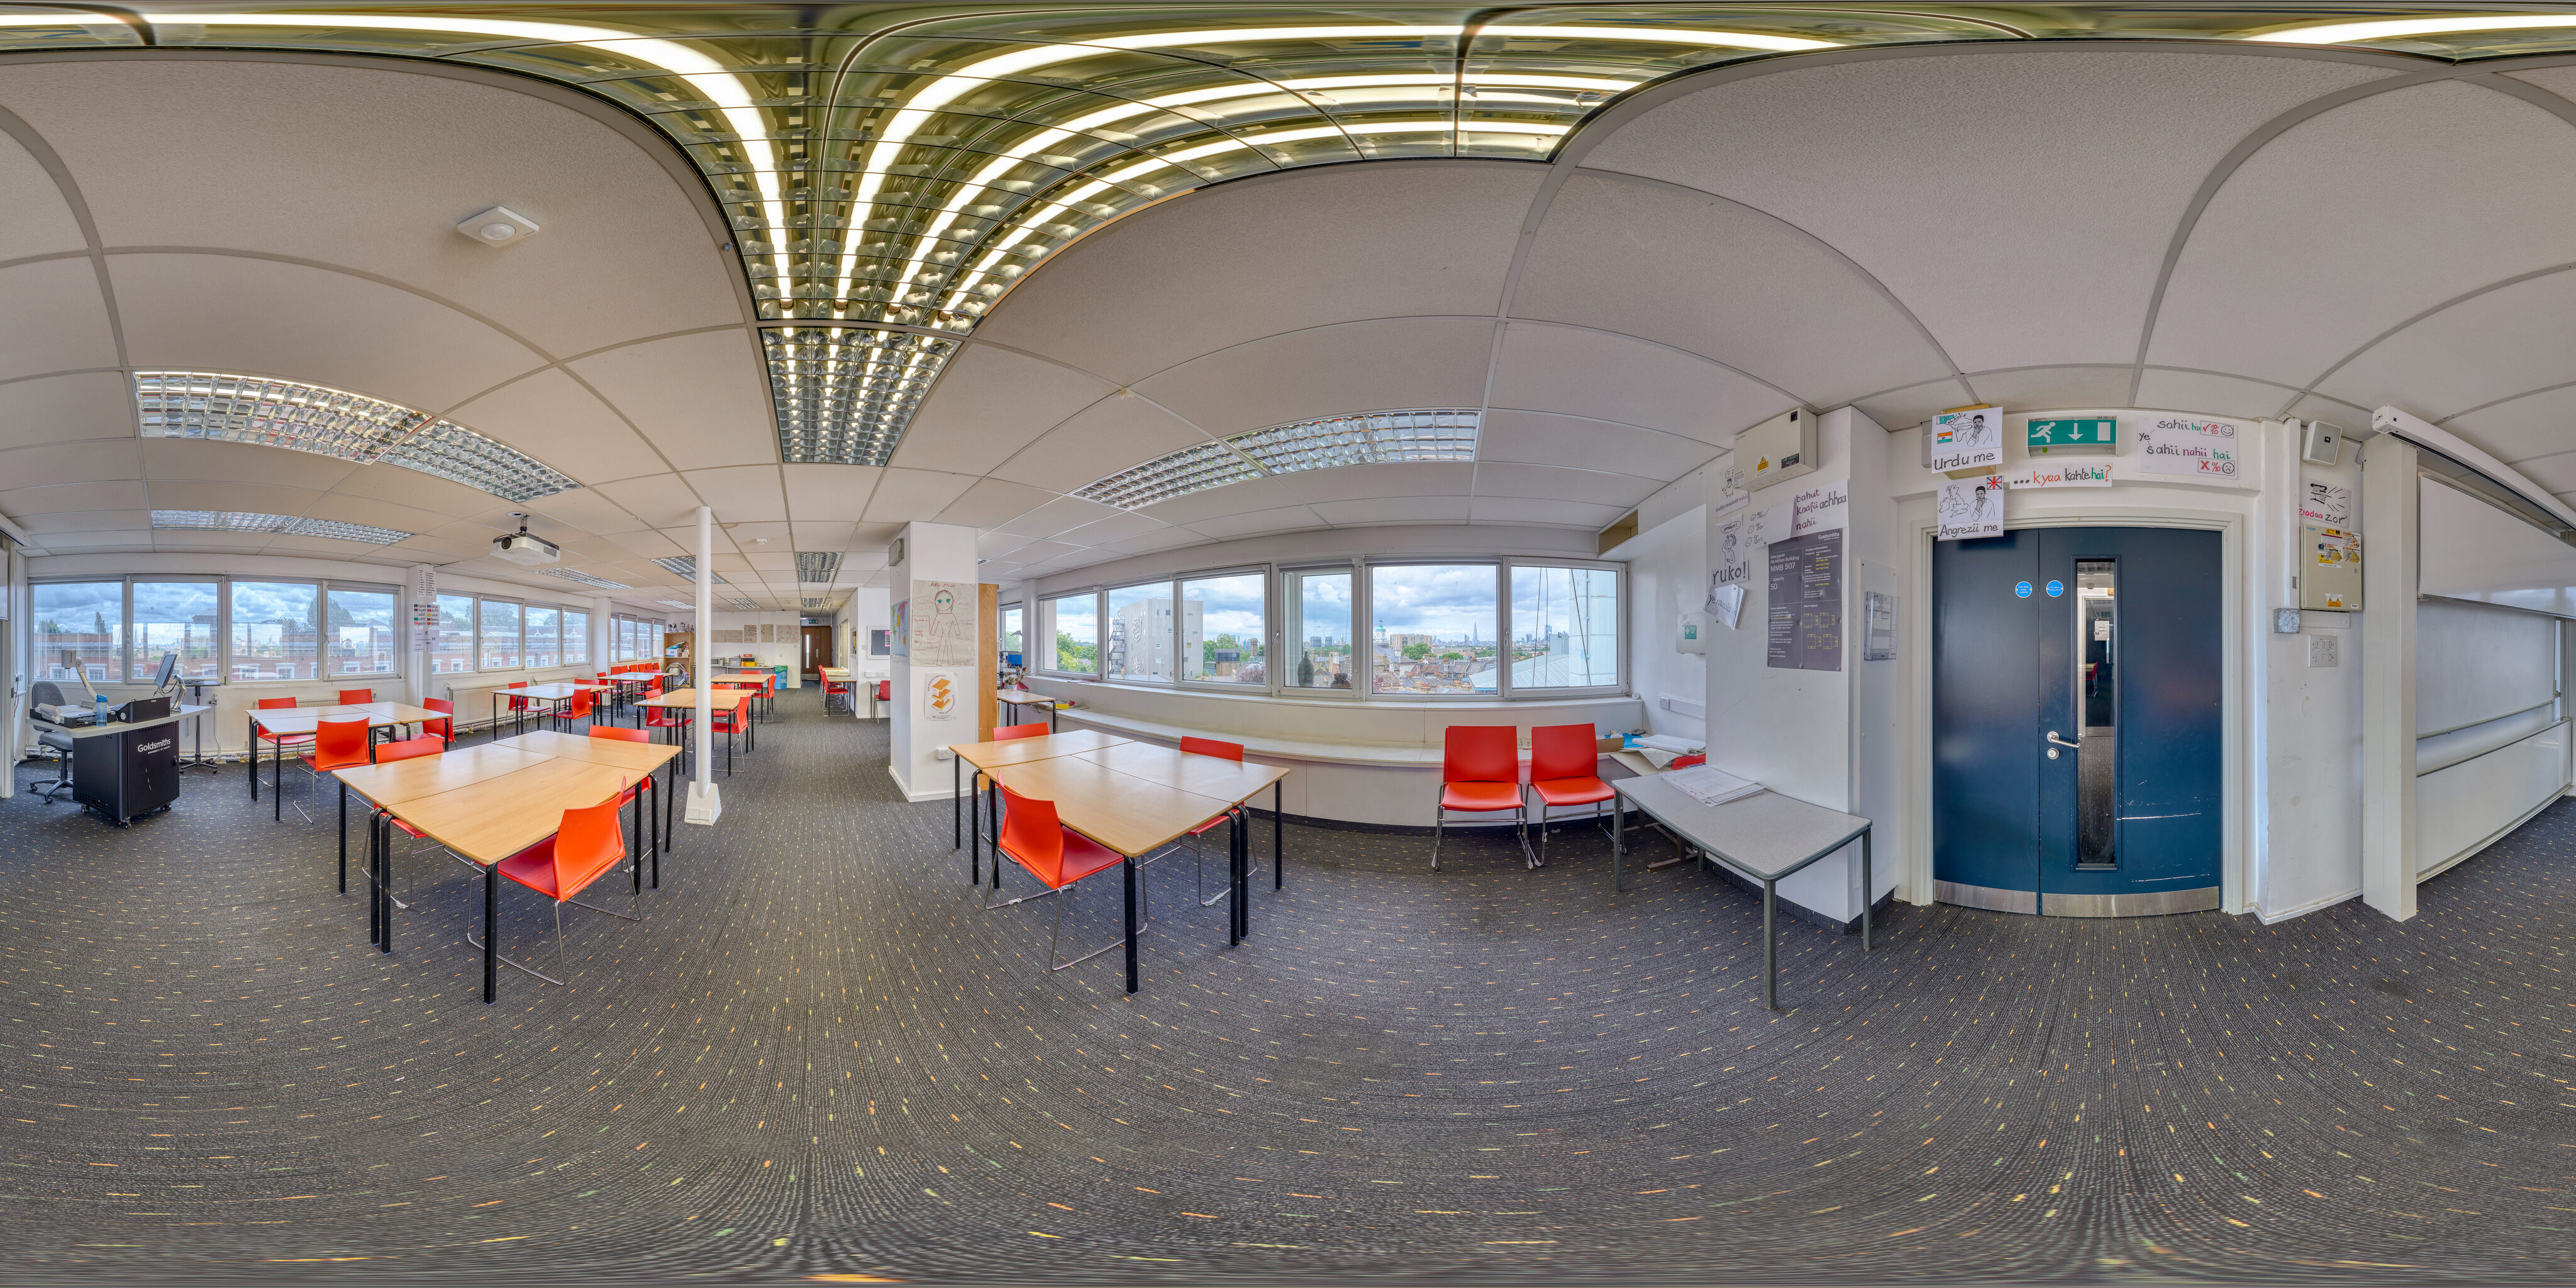 360 of Teaching Space